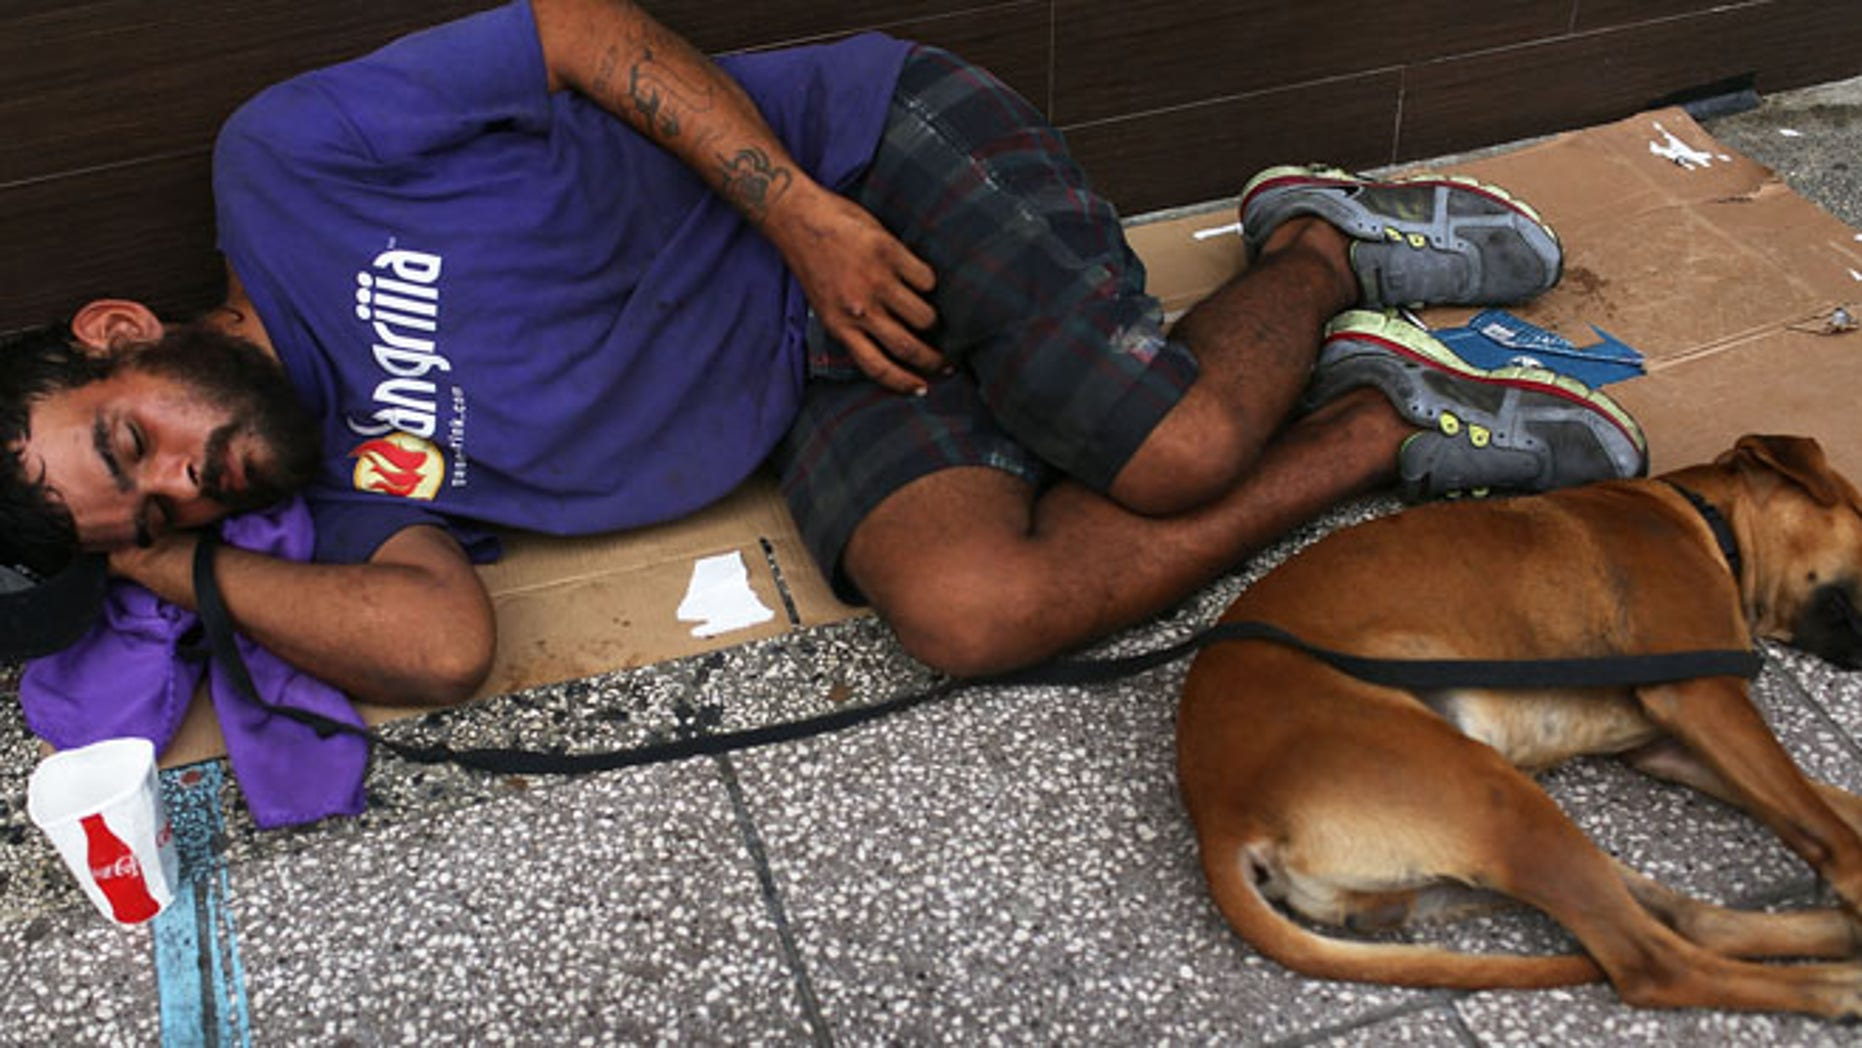 SAN JUAN, PUERTO RICO - JULY 01:  A man sleeps on the sidewalk with a dog on July 1, 2015 in San Juan, Puerto Rico. The island's residents are dealing with increasing economic hardships and a financial crisis that has resulted in the government's $72 billion debt.  Governor Alejandro  Garcia Padilla said in a speech recently  that the people will have to sacrifice and share in the responsibilities for pulling the island out of debt.  (Photo by Joe Raedle/Getty Images)